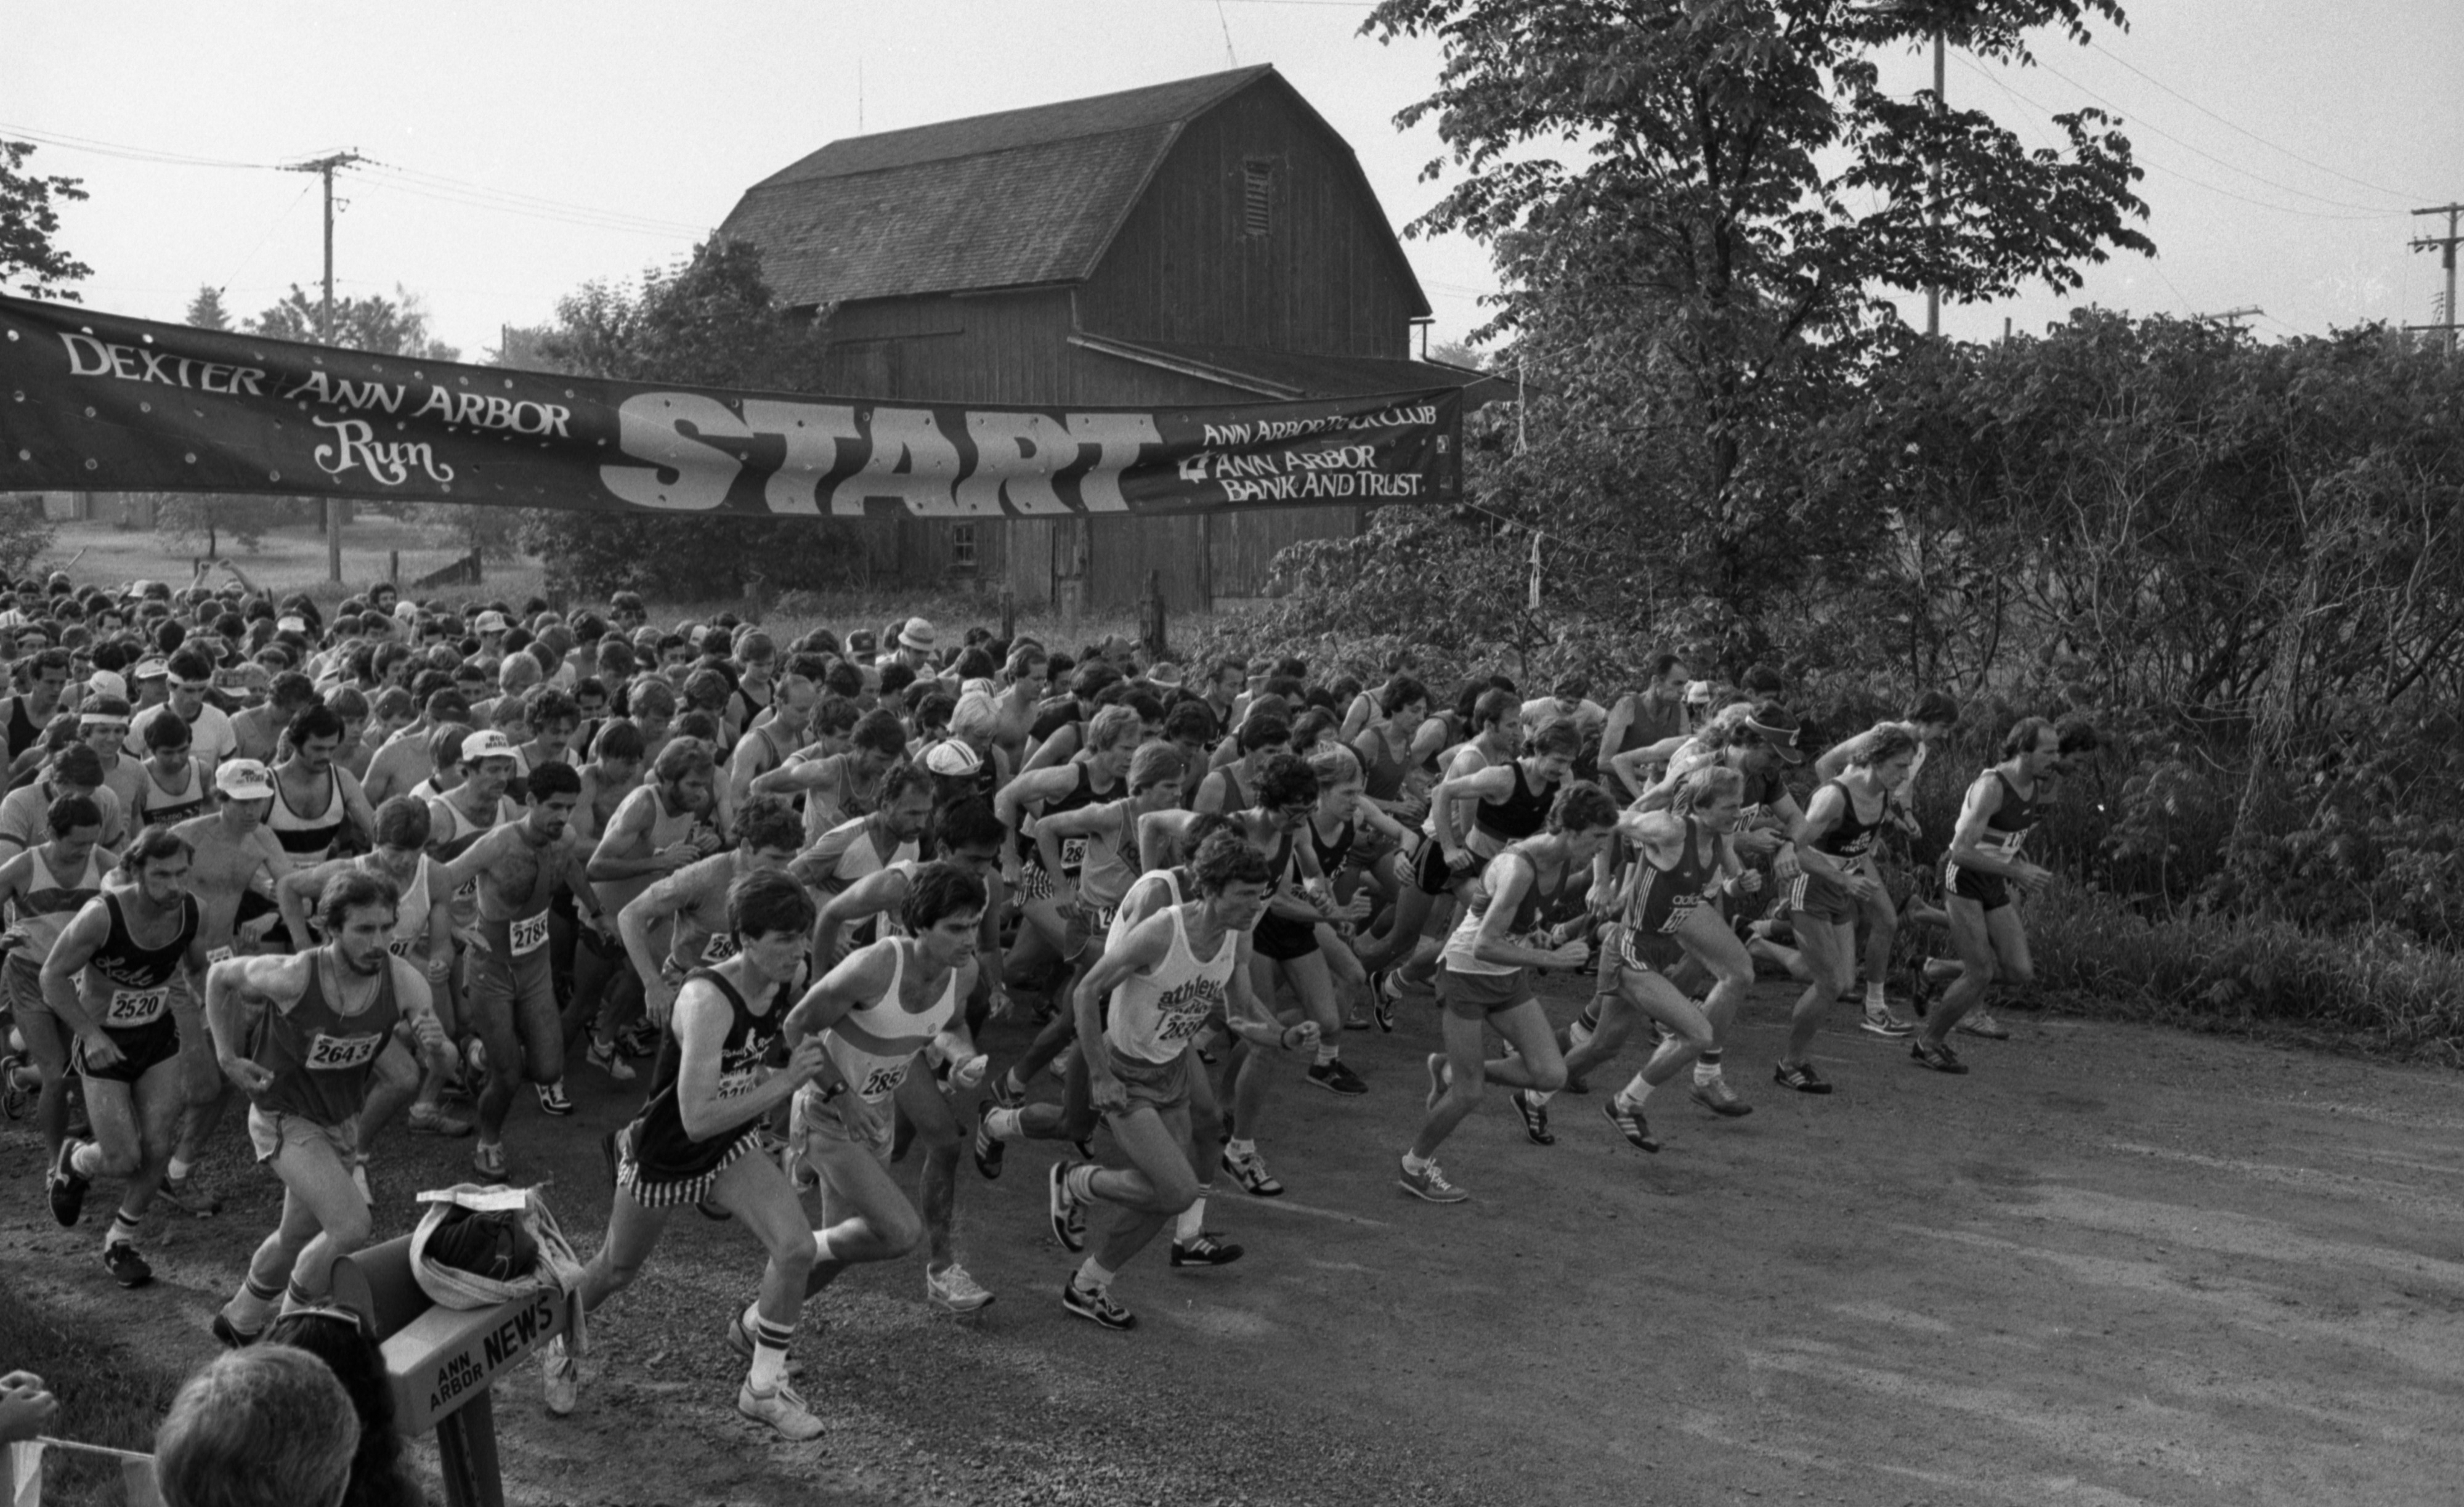 At The Starting Line Of The Dexter-Ann Arbor Run, May 29, 1982 image